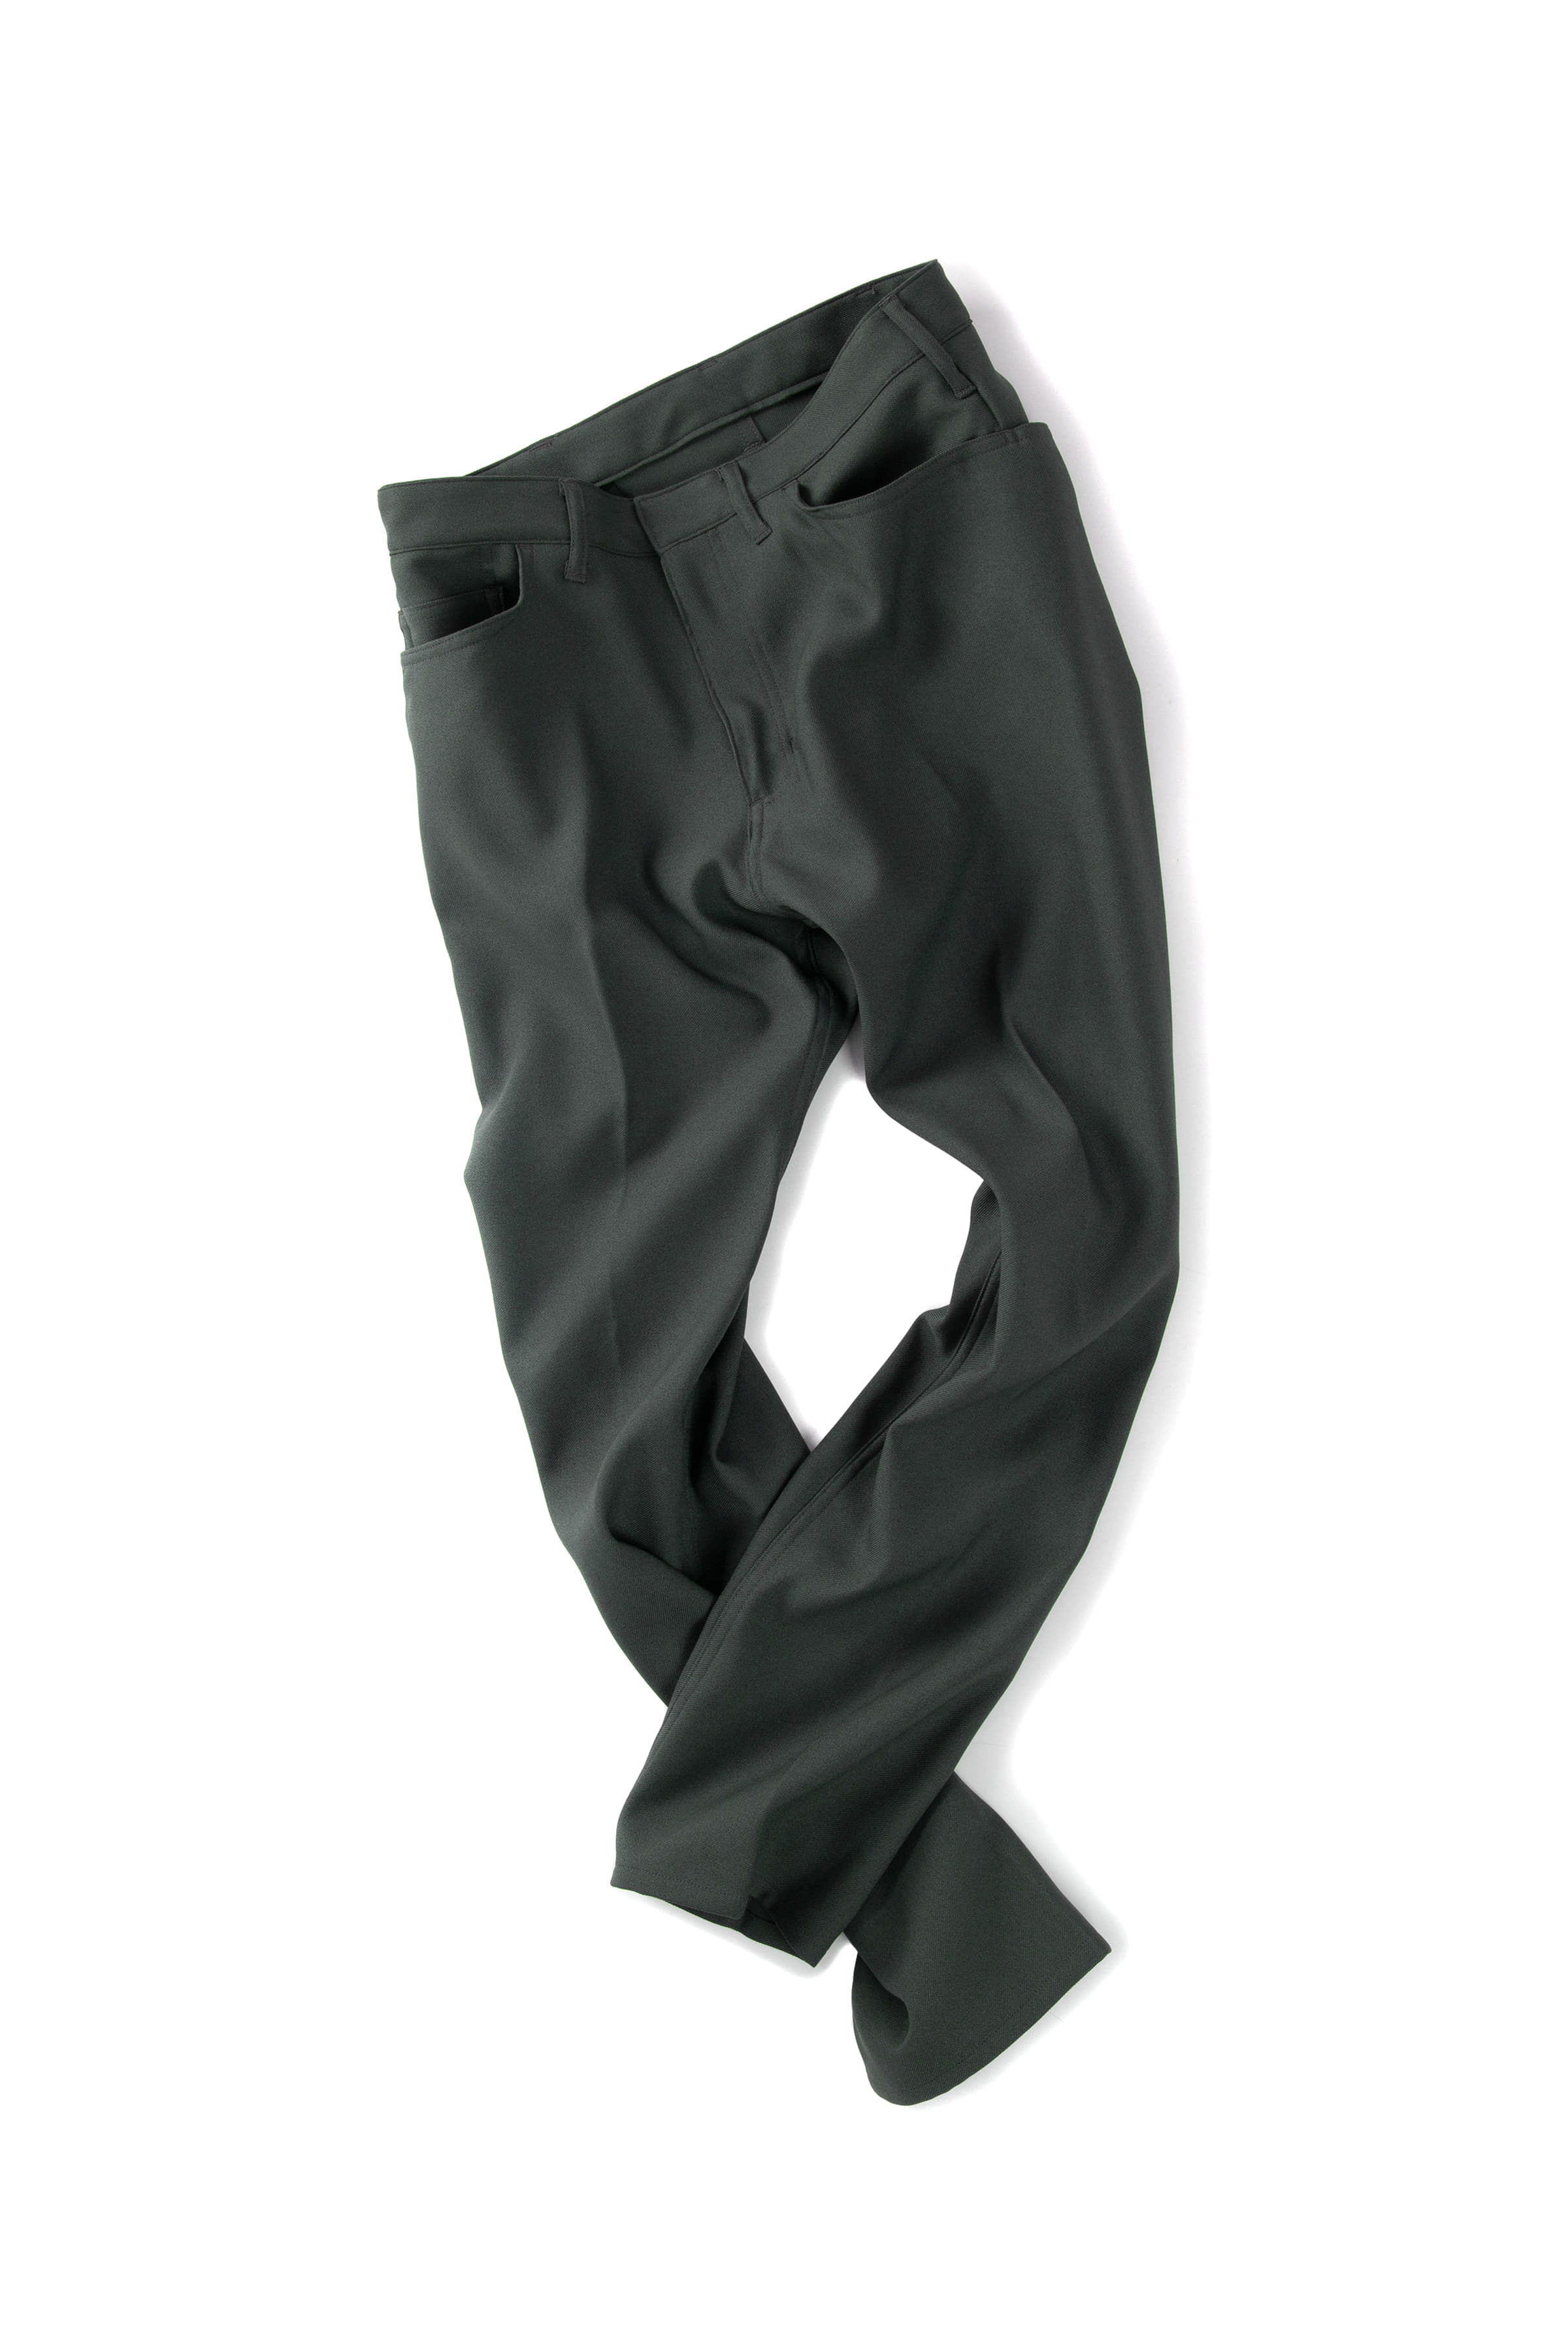 CLAMP : Sta Prest Pants (Grey)